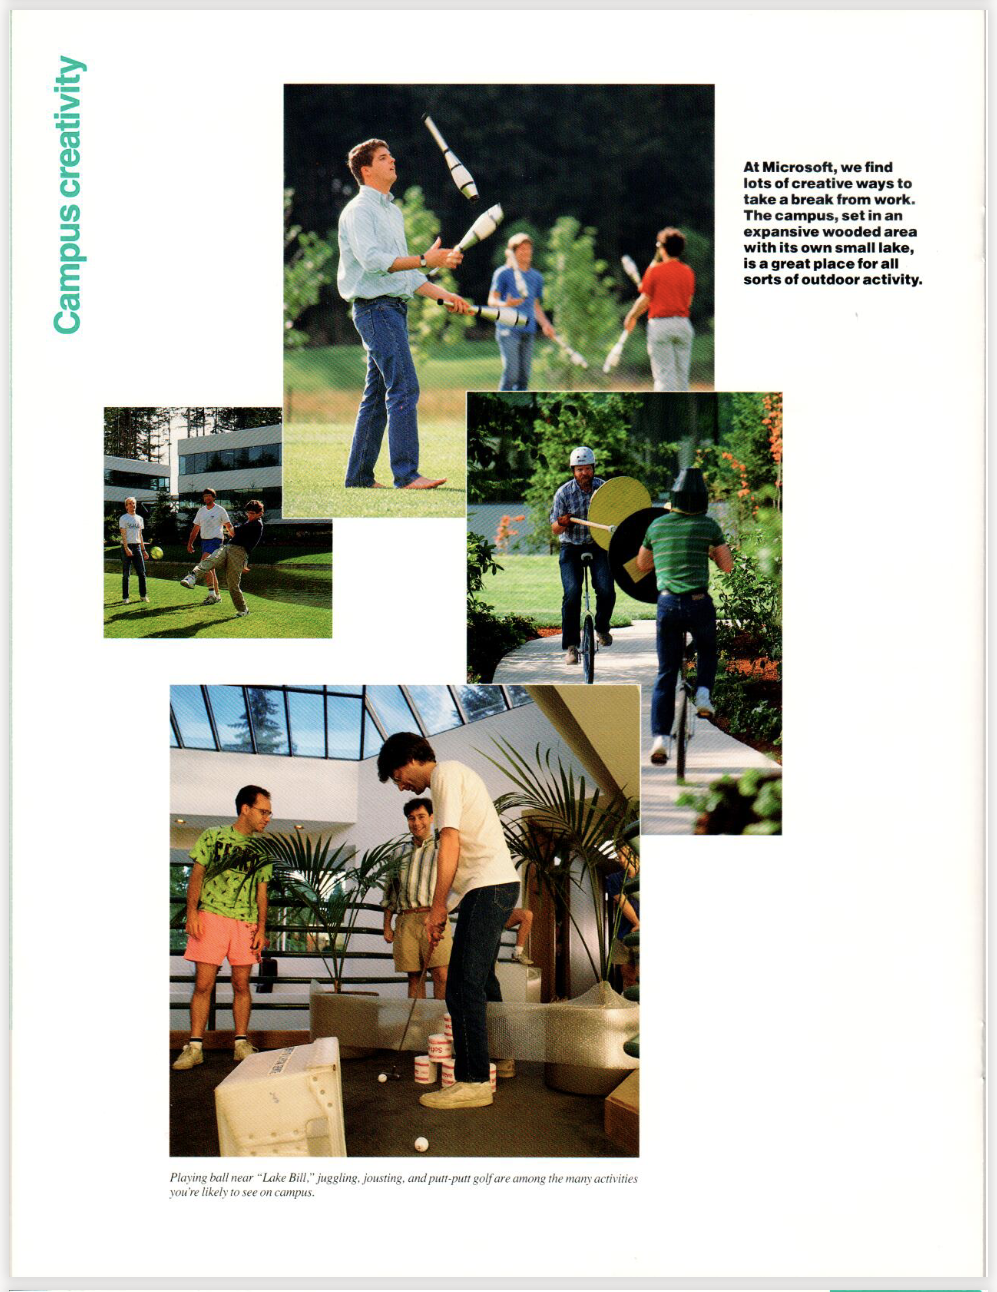 Page from a brochure featuring four photos. One is of people juggling in sunshine. One is people playing soccer, but wearing work clothes. Another are two people medieval jousting on unicycles. The final photo are several people putting golf balls in a hallway.